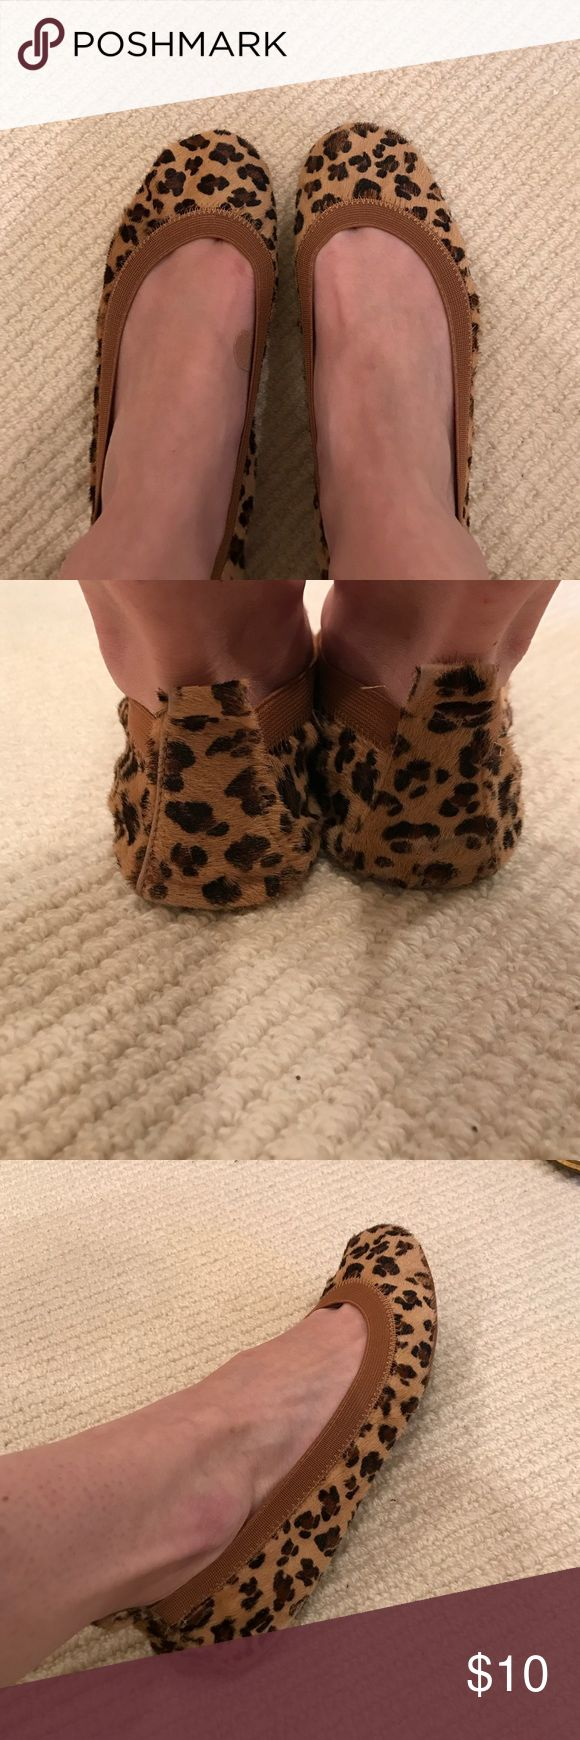 Yosi Samra Cheetah Flats. Cheetah flats with rubber soles and a tan elastic band around the foot. Tab on the heal to pull the shoe on. Please see imperfection on bottom of shoe leather in picture 4. Yosi Samra Shoes Flats & Loafers